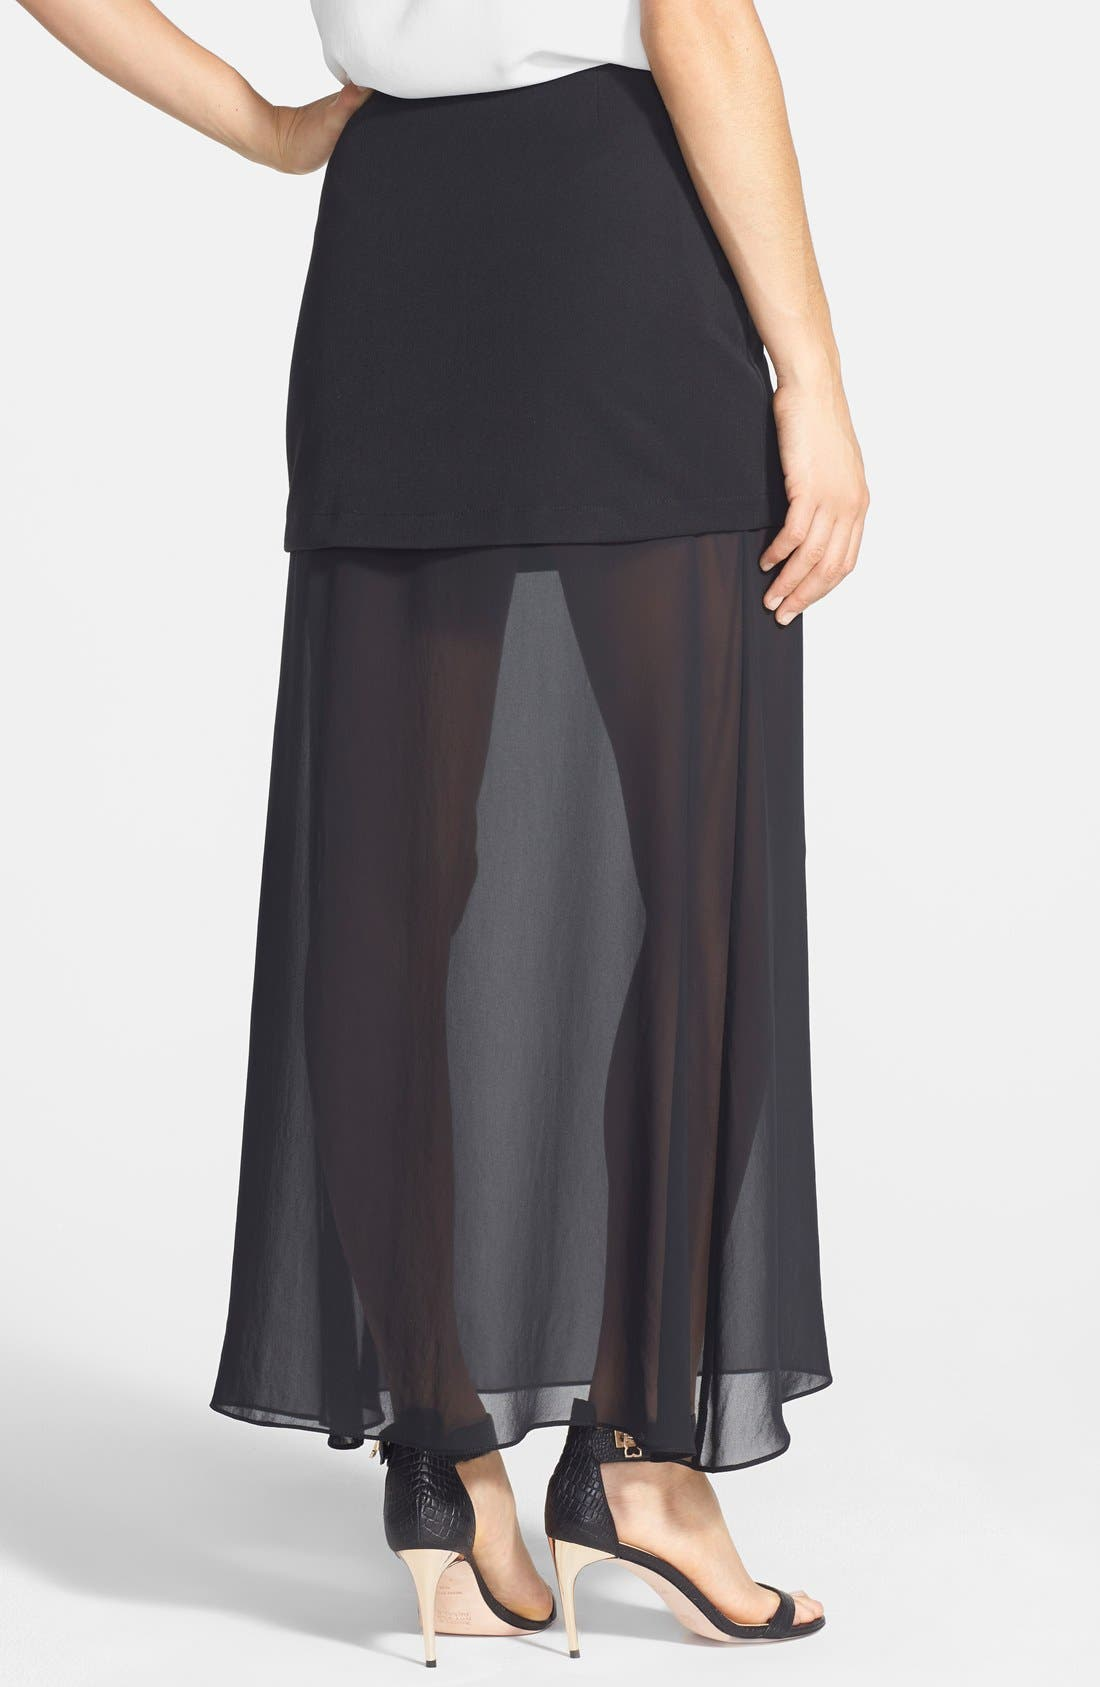 NIKKI RICH, 'Hematite' Chiffon Underlayer Skirt, Alternate thumbnail 2, color, 001